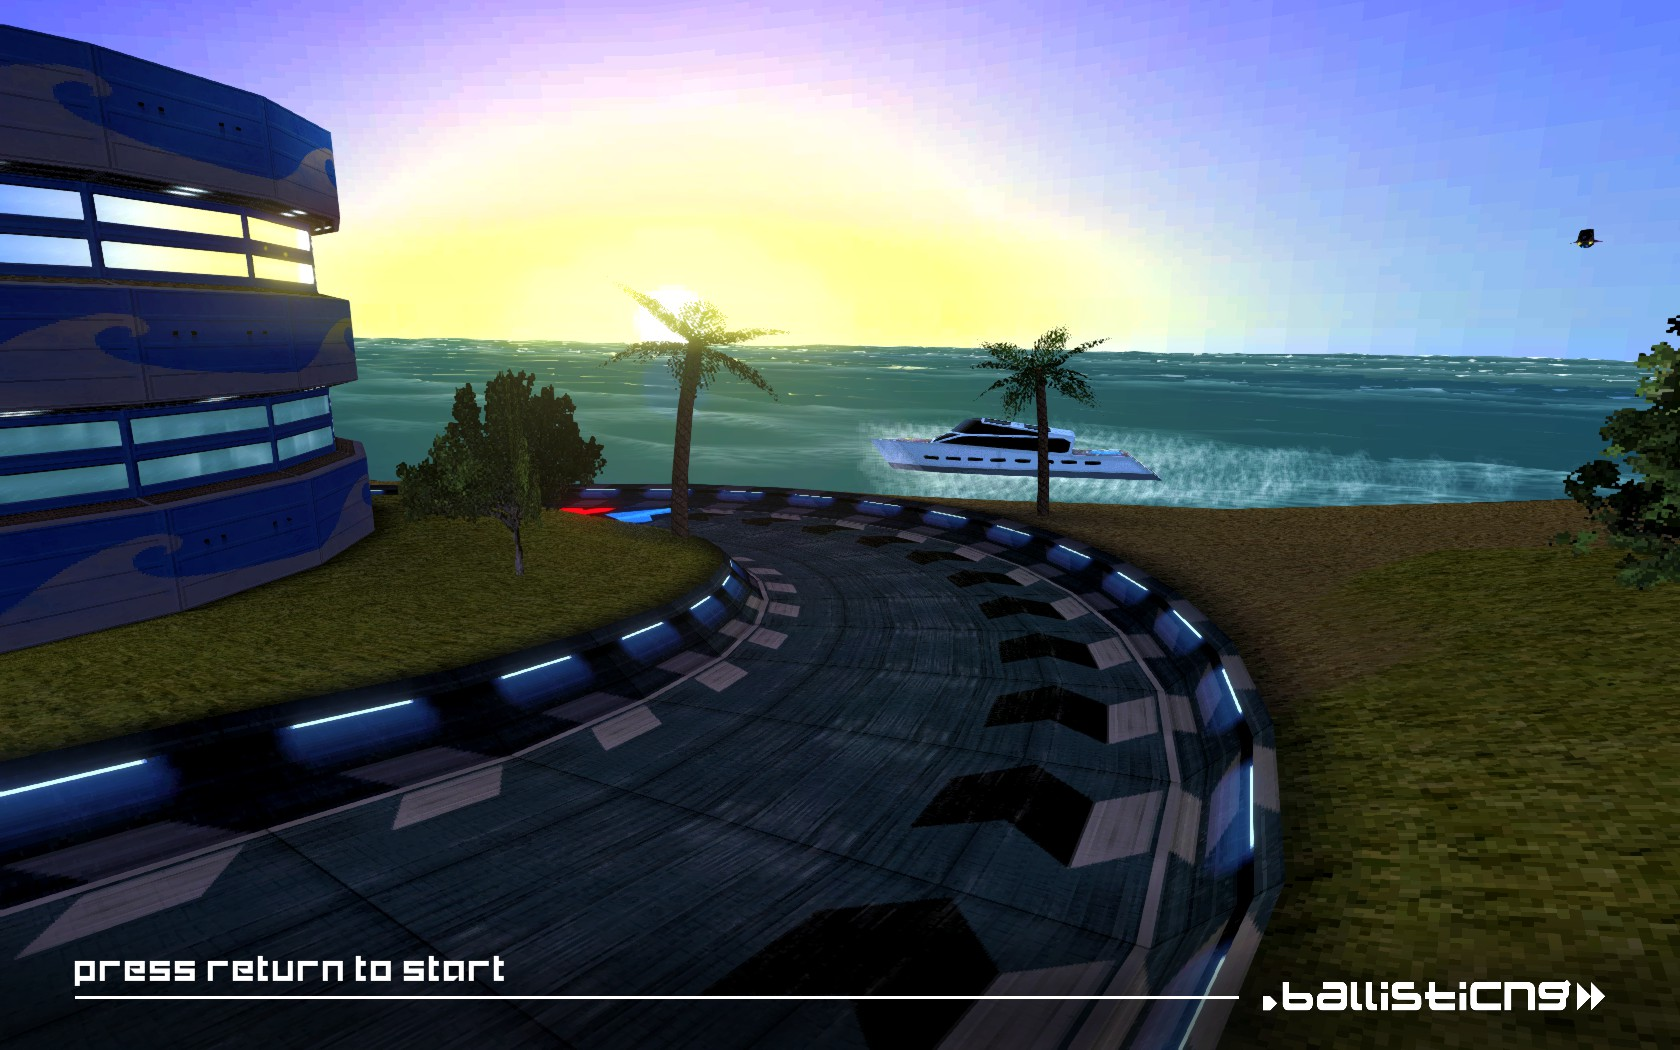 What's a good modern racing game (sim OR arcade, whichever) that is